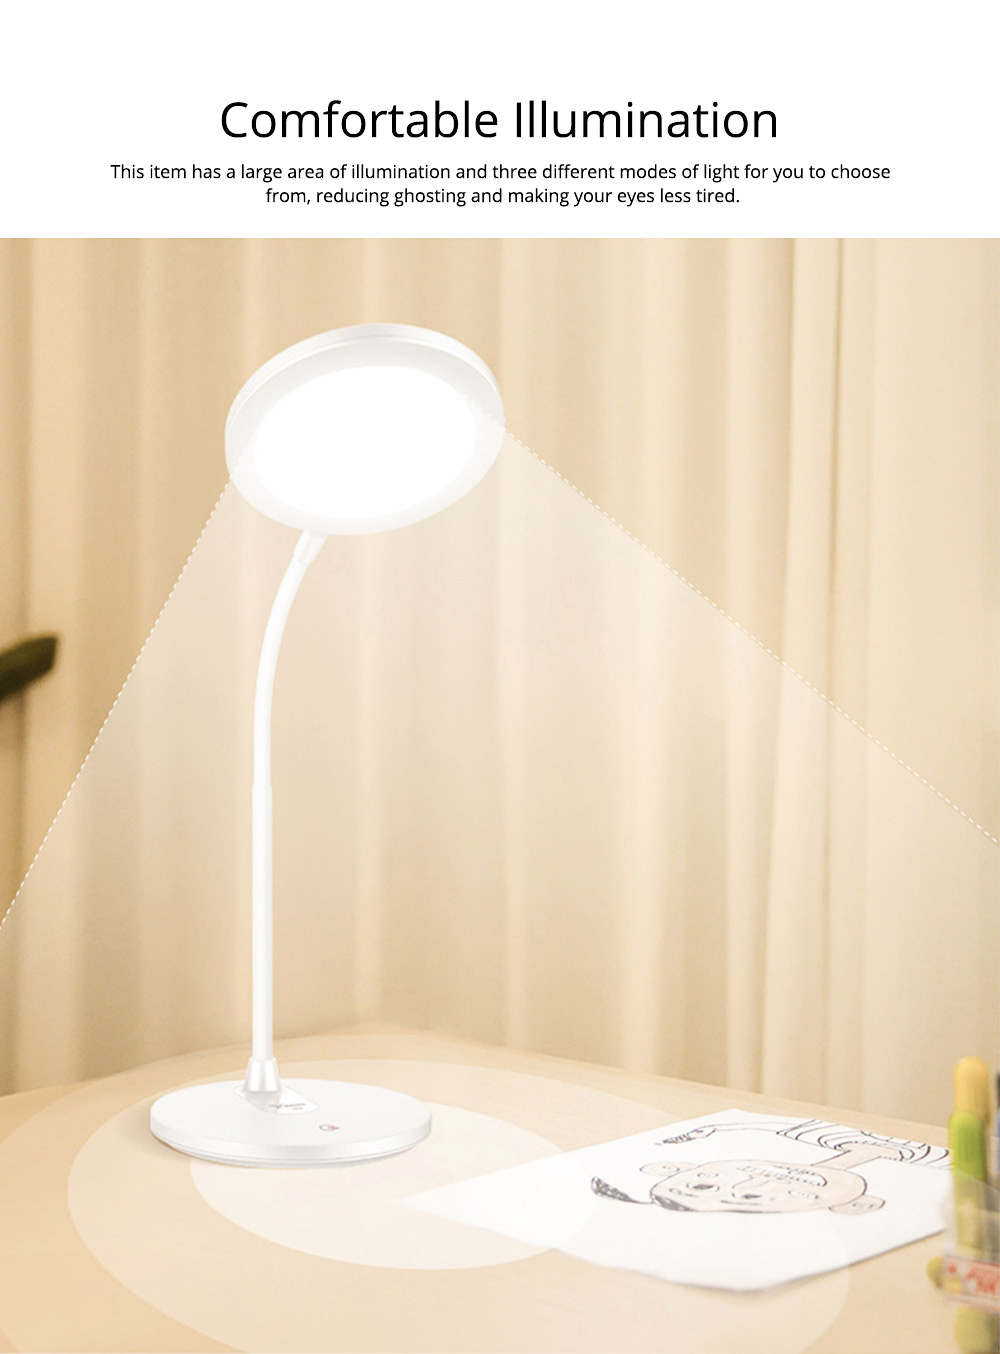 Flexible Eye Protection LED Table USB Charging Round Lamp, 3 Models Dimming Stepless Adjusted Light Lamp with Intelligent Touch 1